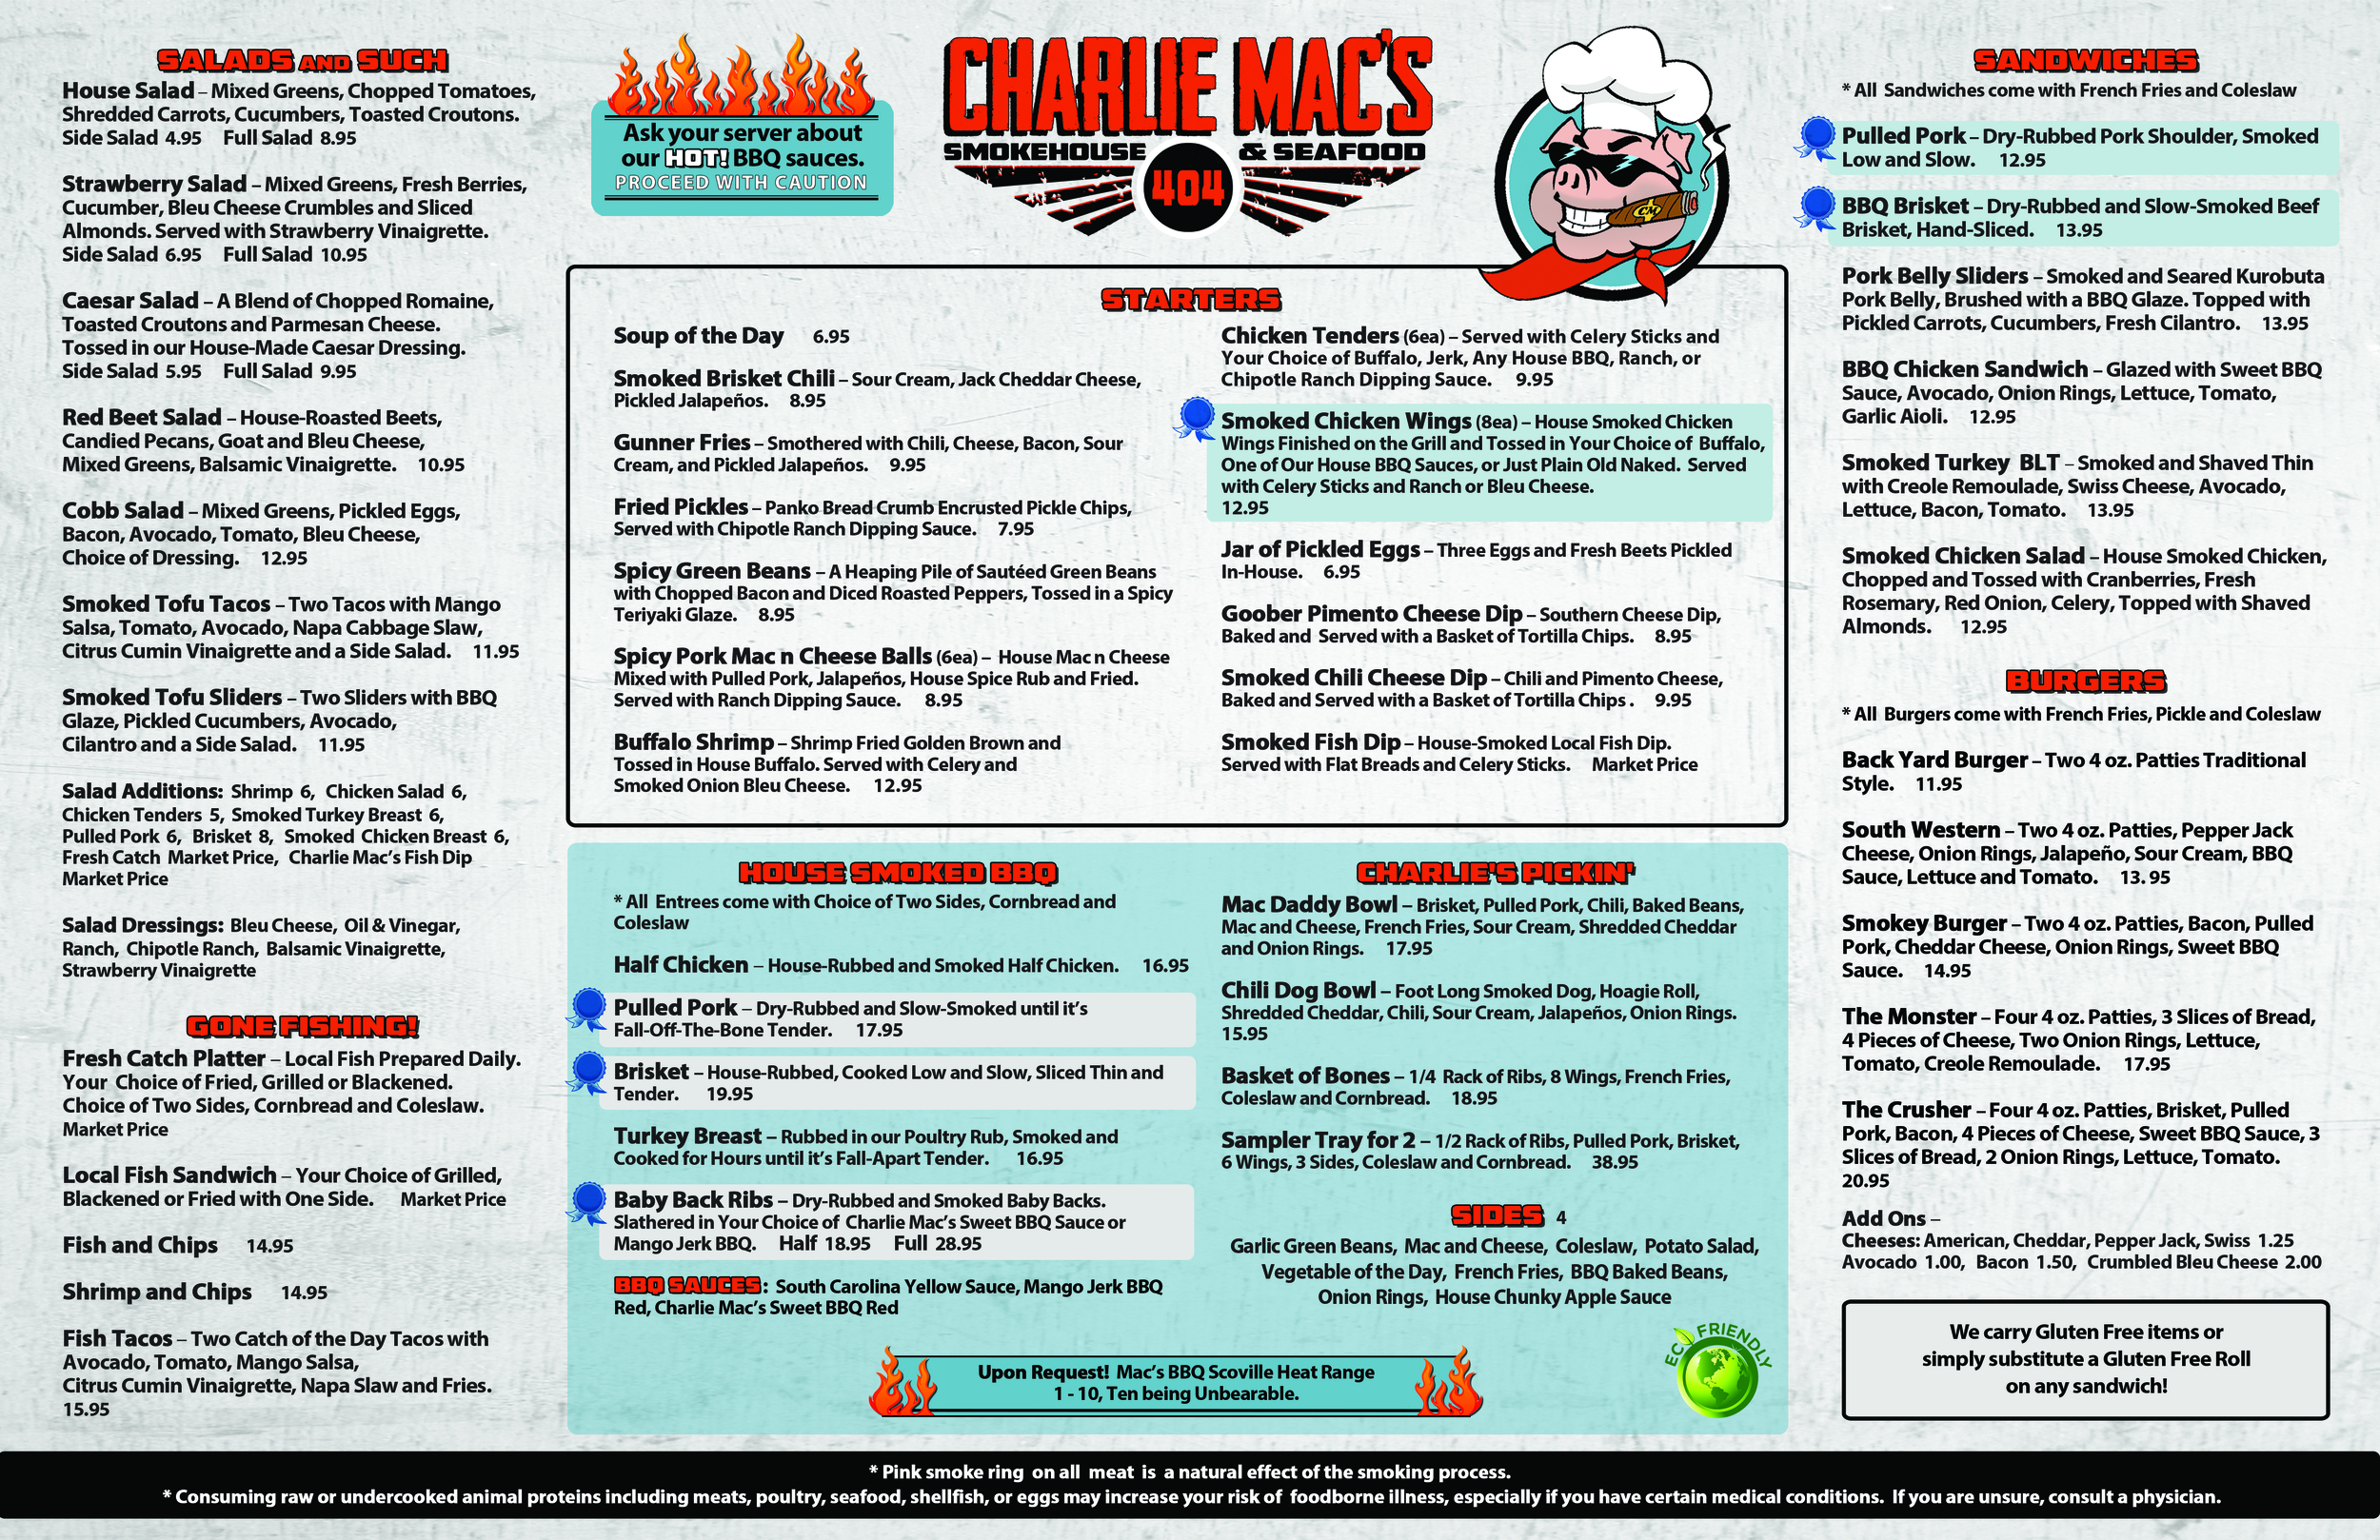 CM_Menu_17x11_Front_Oct2014_PRINT-FINAL.jpg